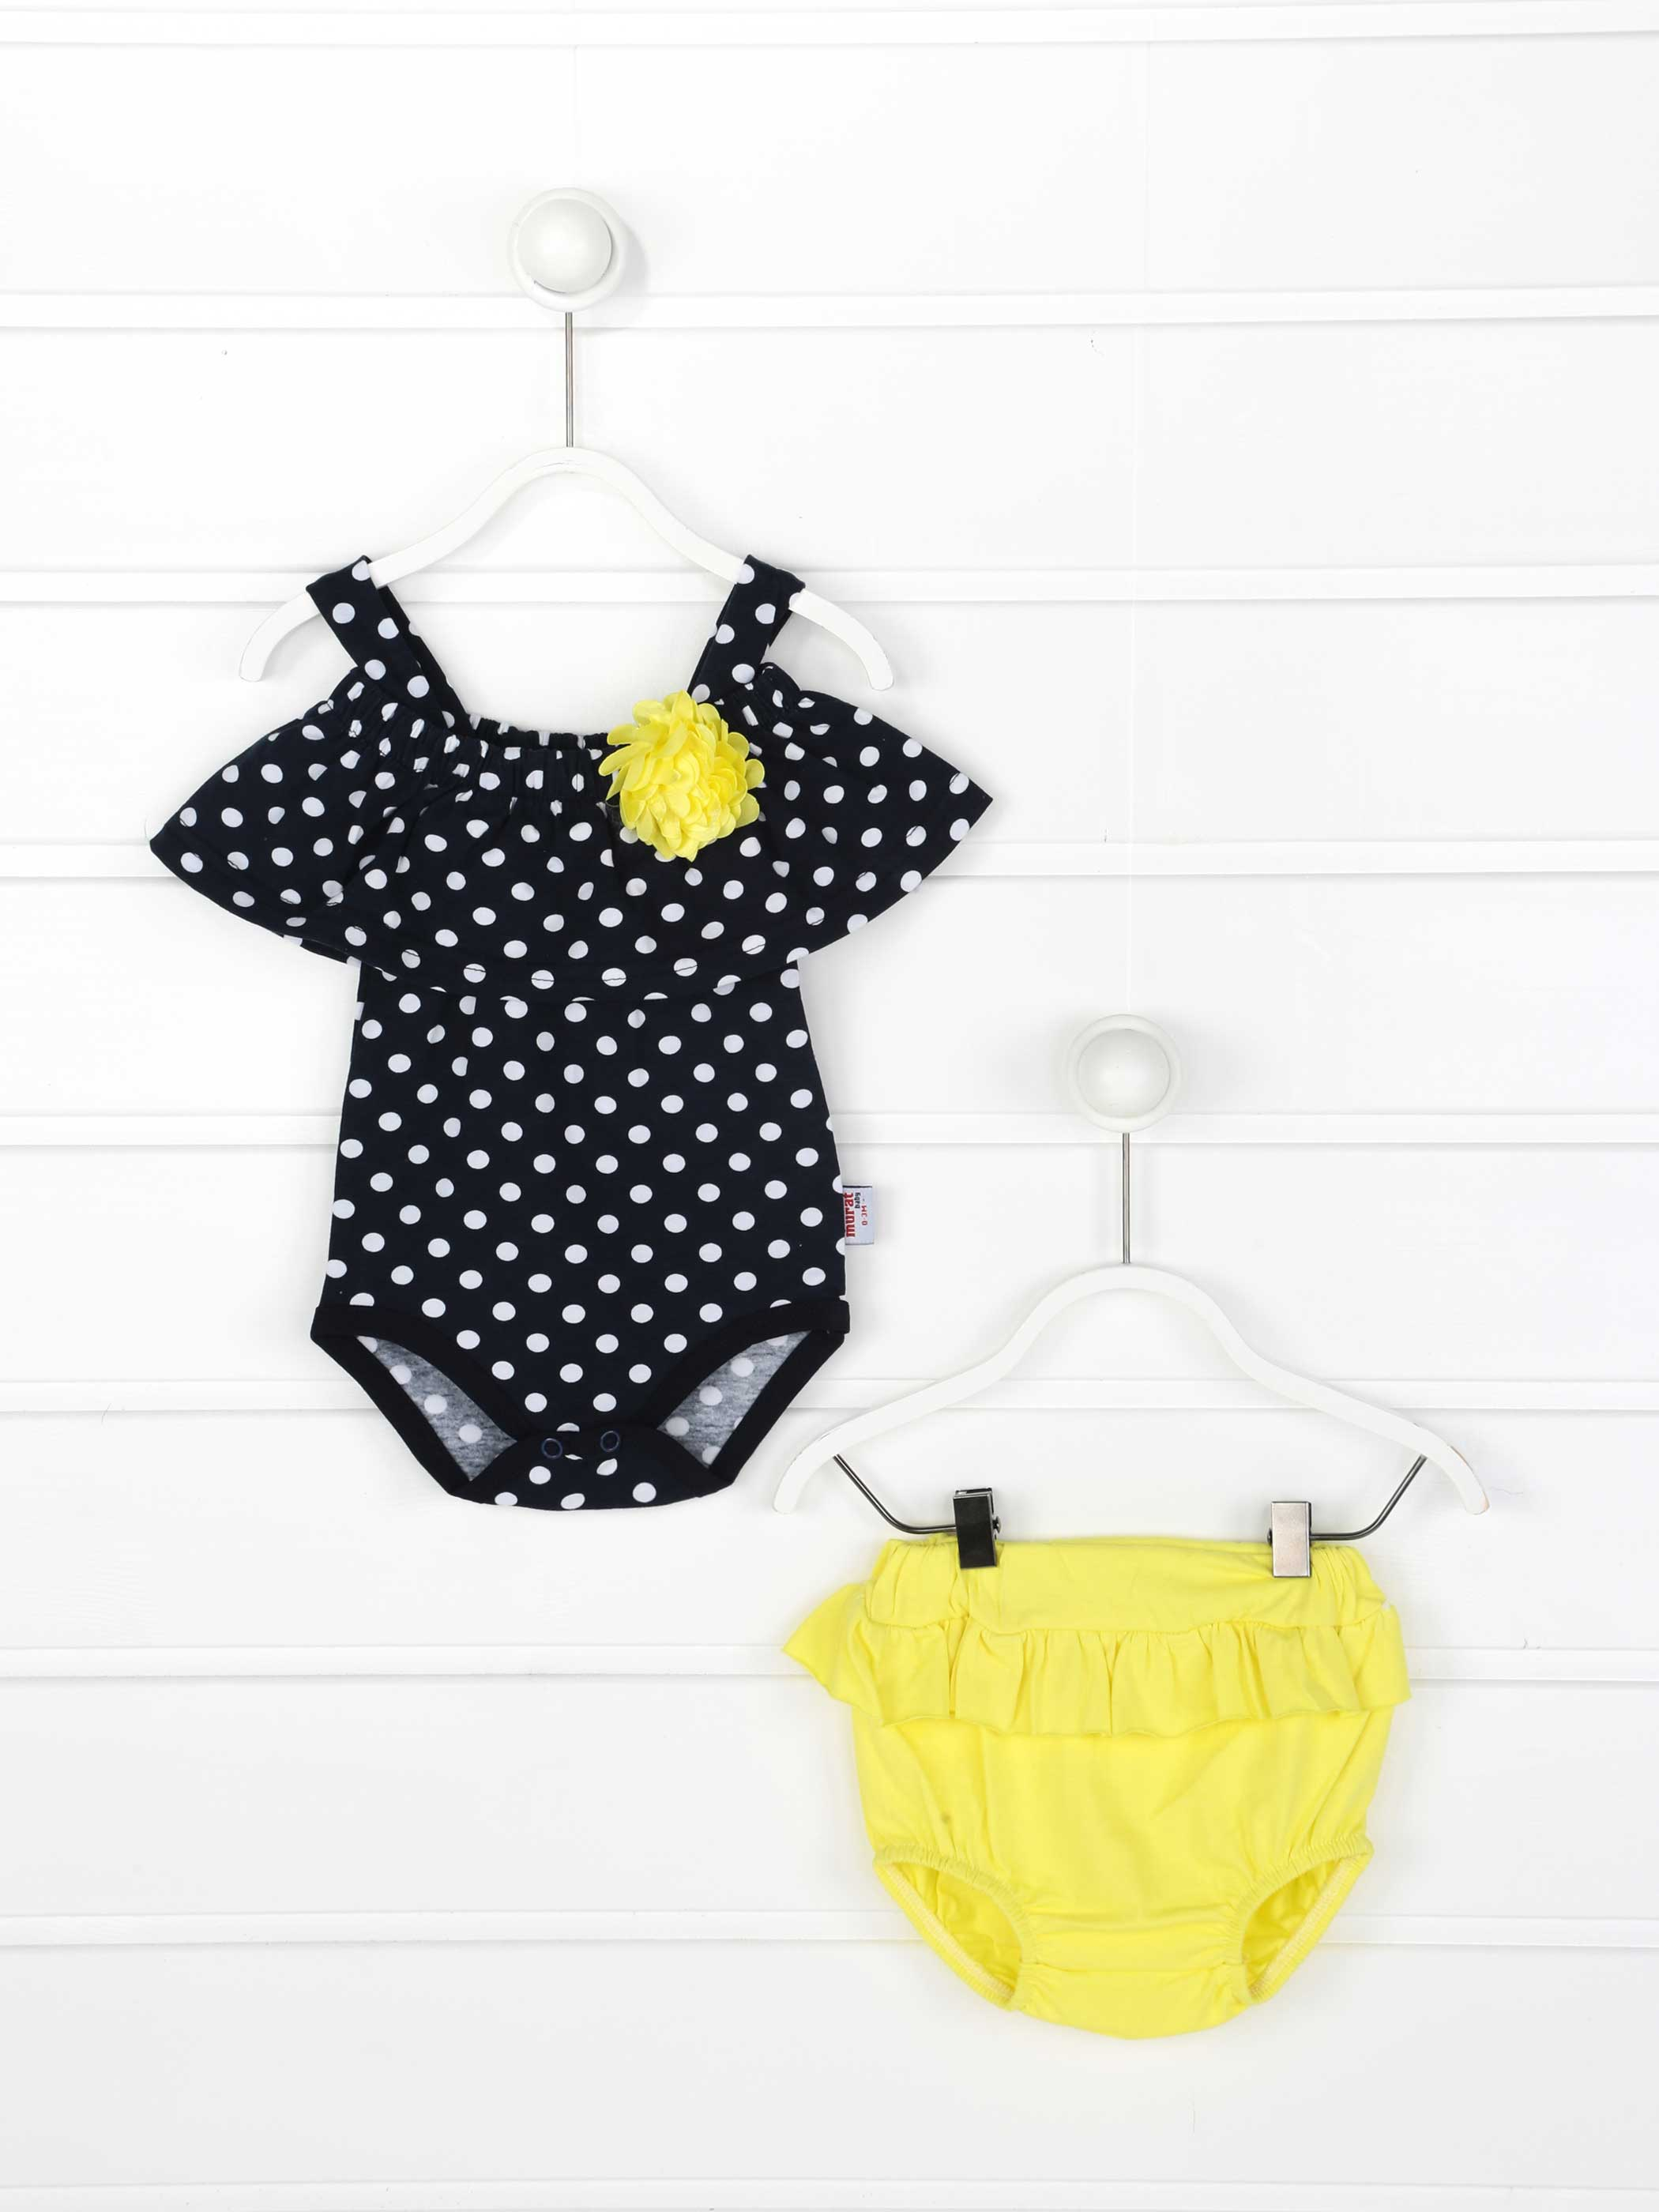 New Summer Baby Girls Clothing Sets Jumpsuit and Panties 2pcs Comfortable Use Babies Fashion Kids Girls Clothes Suit Outfits